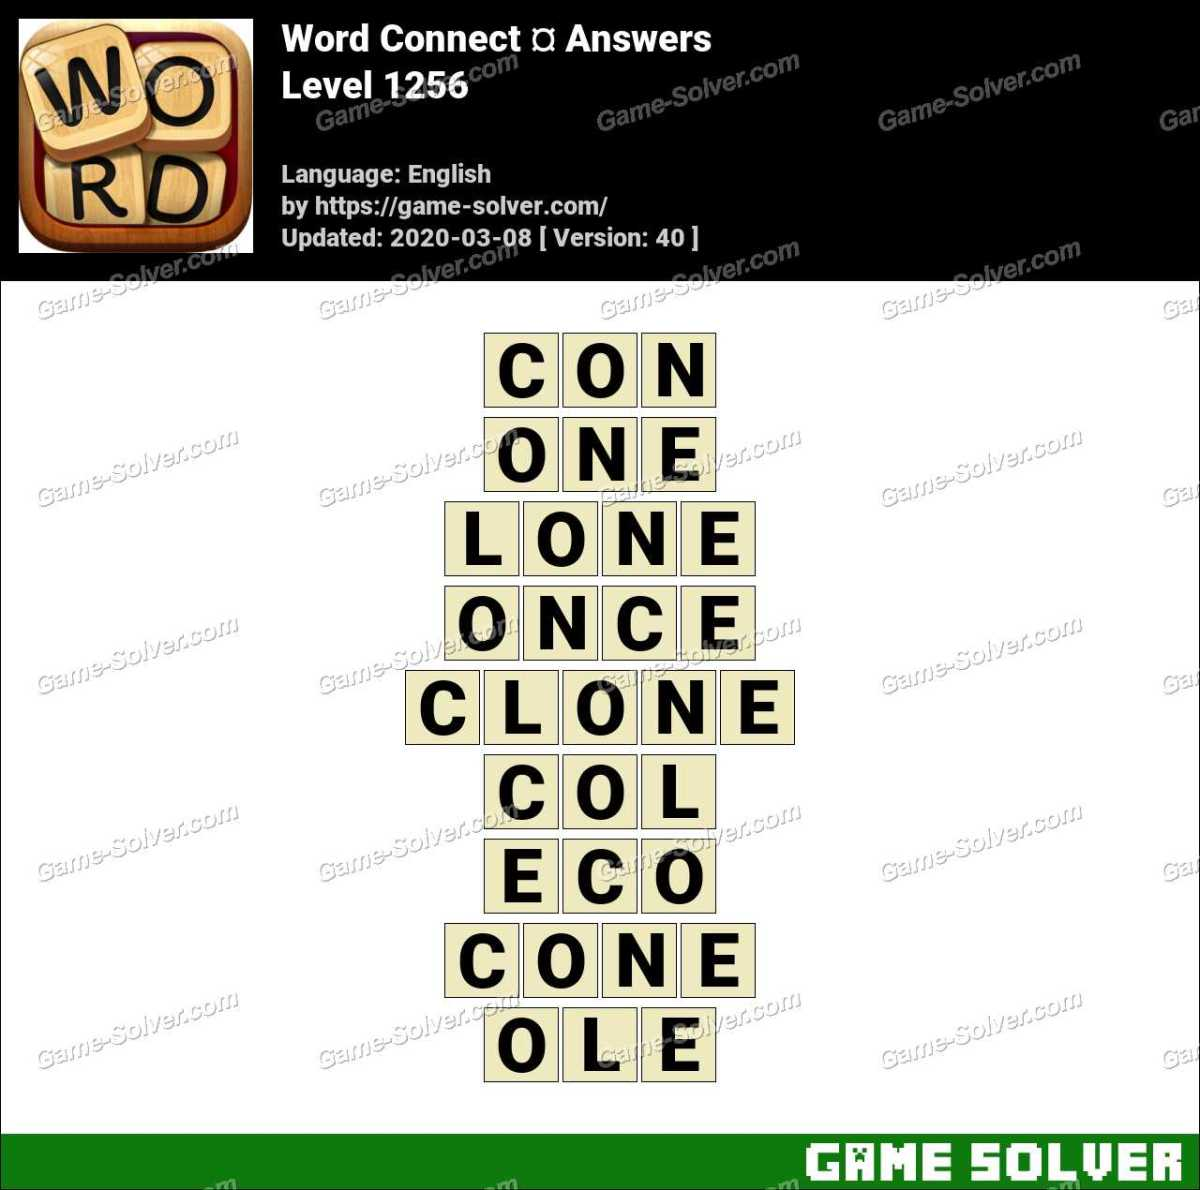 Word Connect Level 1256 Answers